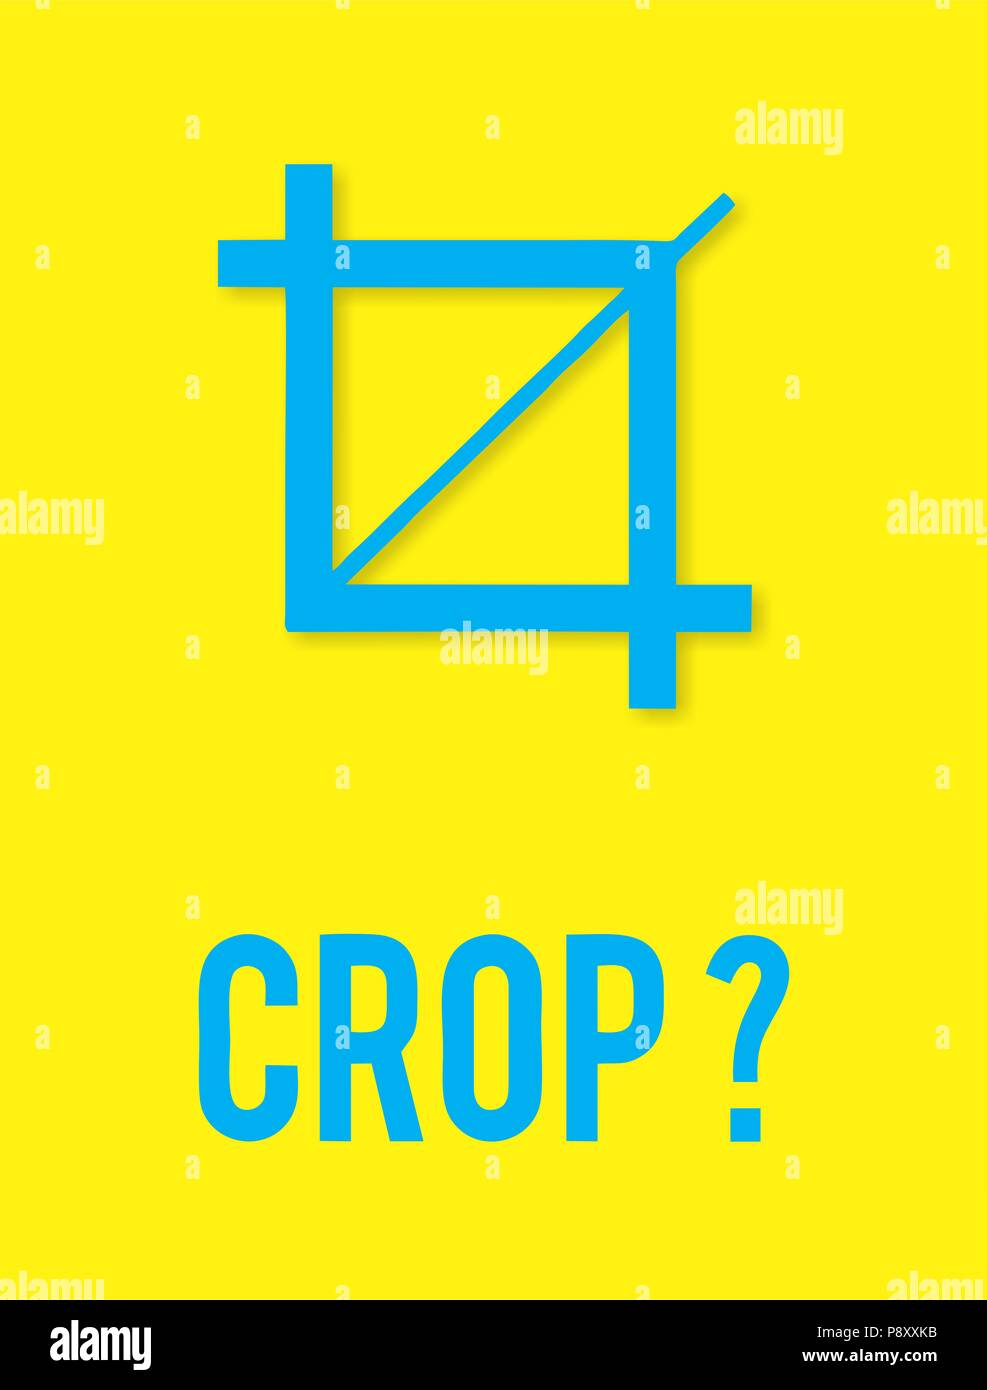 CROP?, typography poster, designer poster - Stock Image